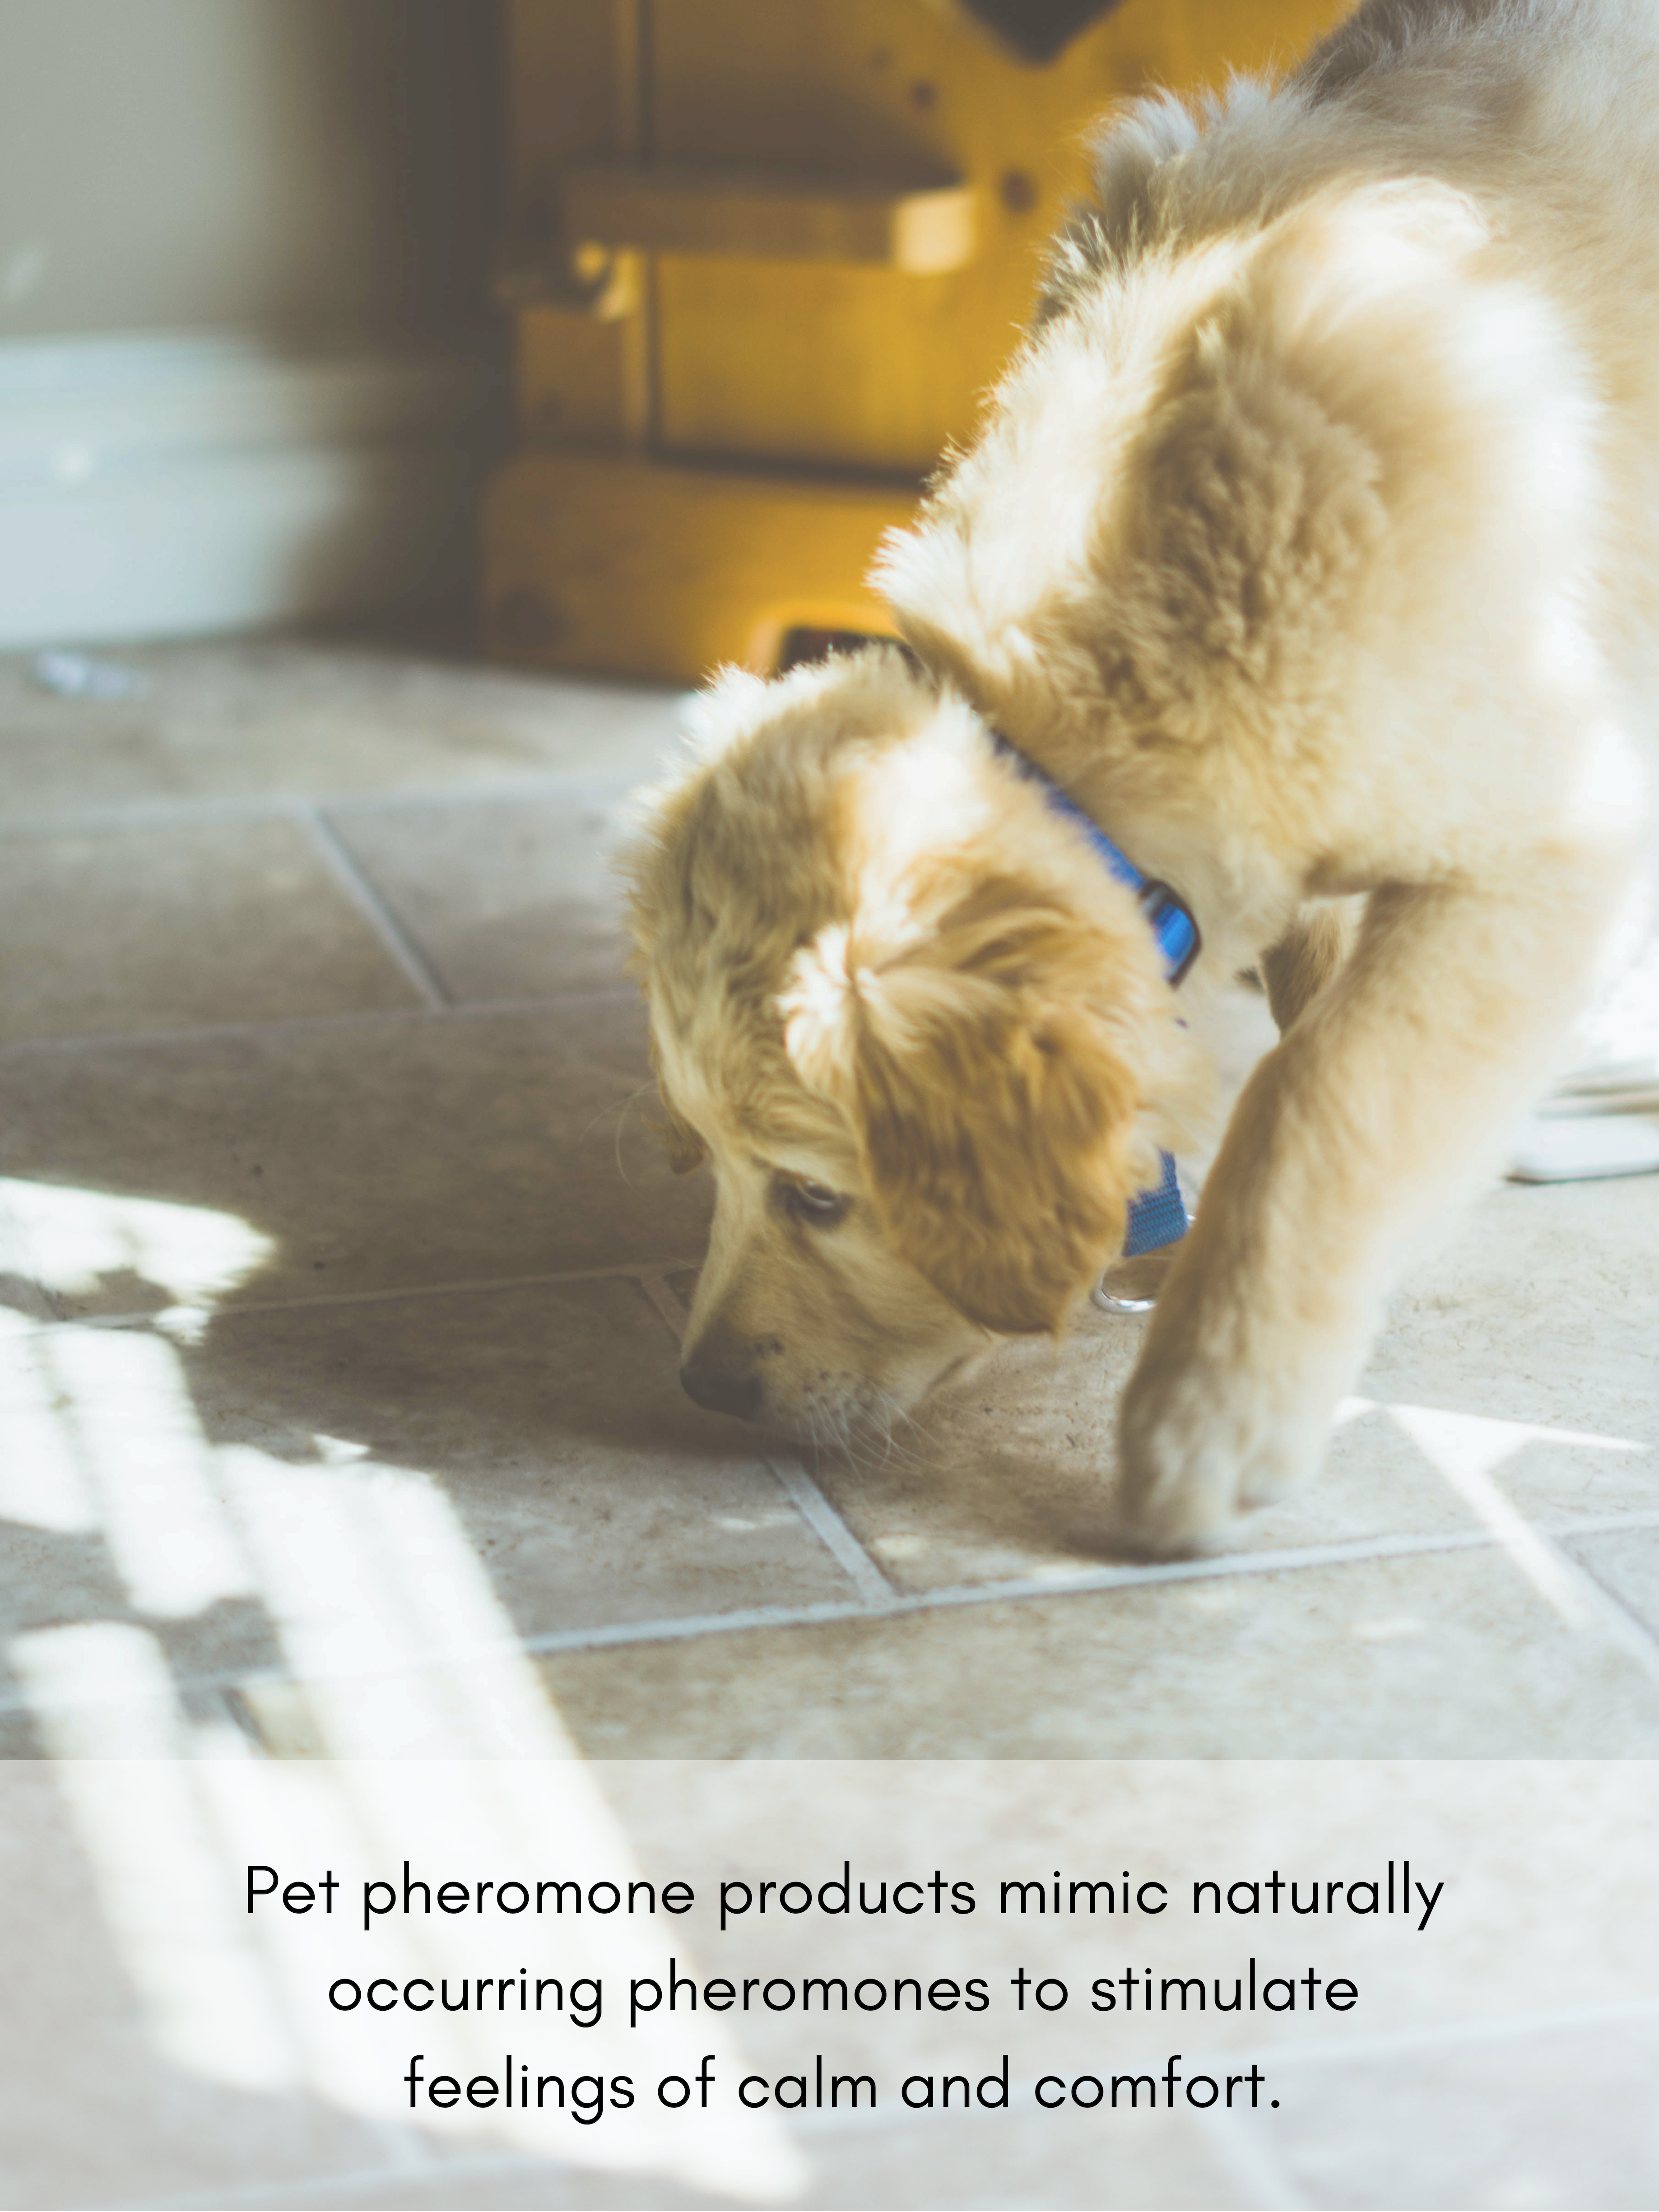 Pet pheromone products mimic naturally occurring pheromones to stimulate feelings of calm and comfort.